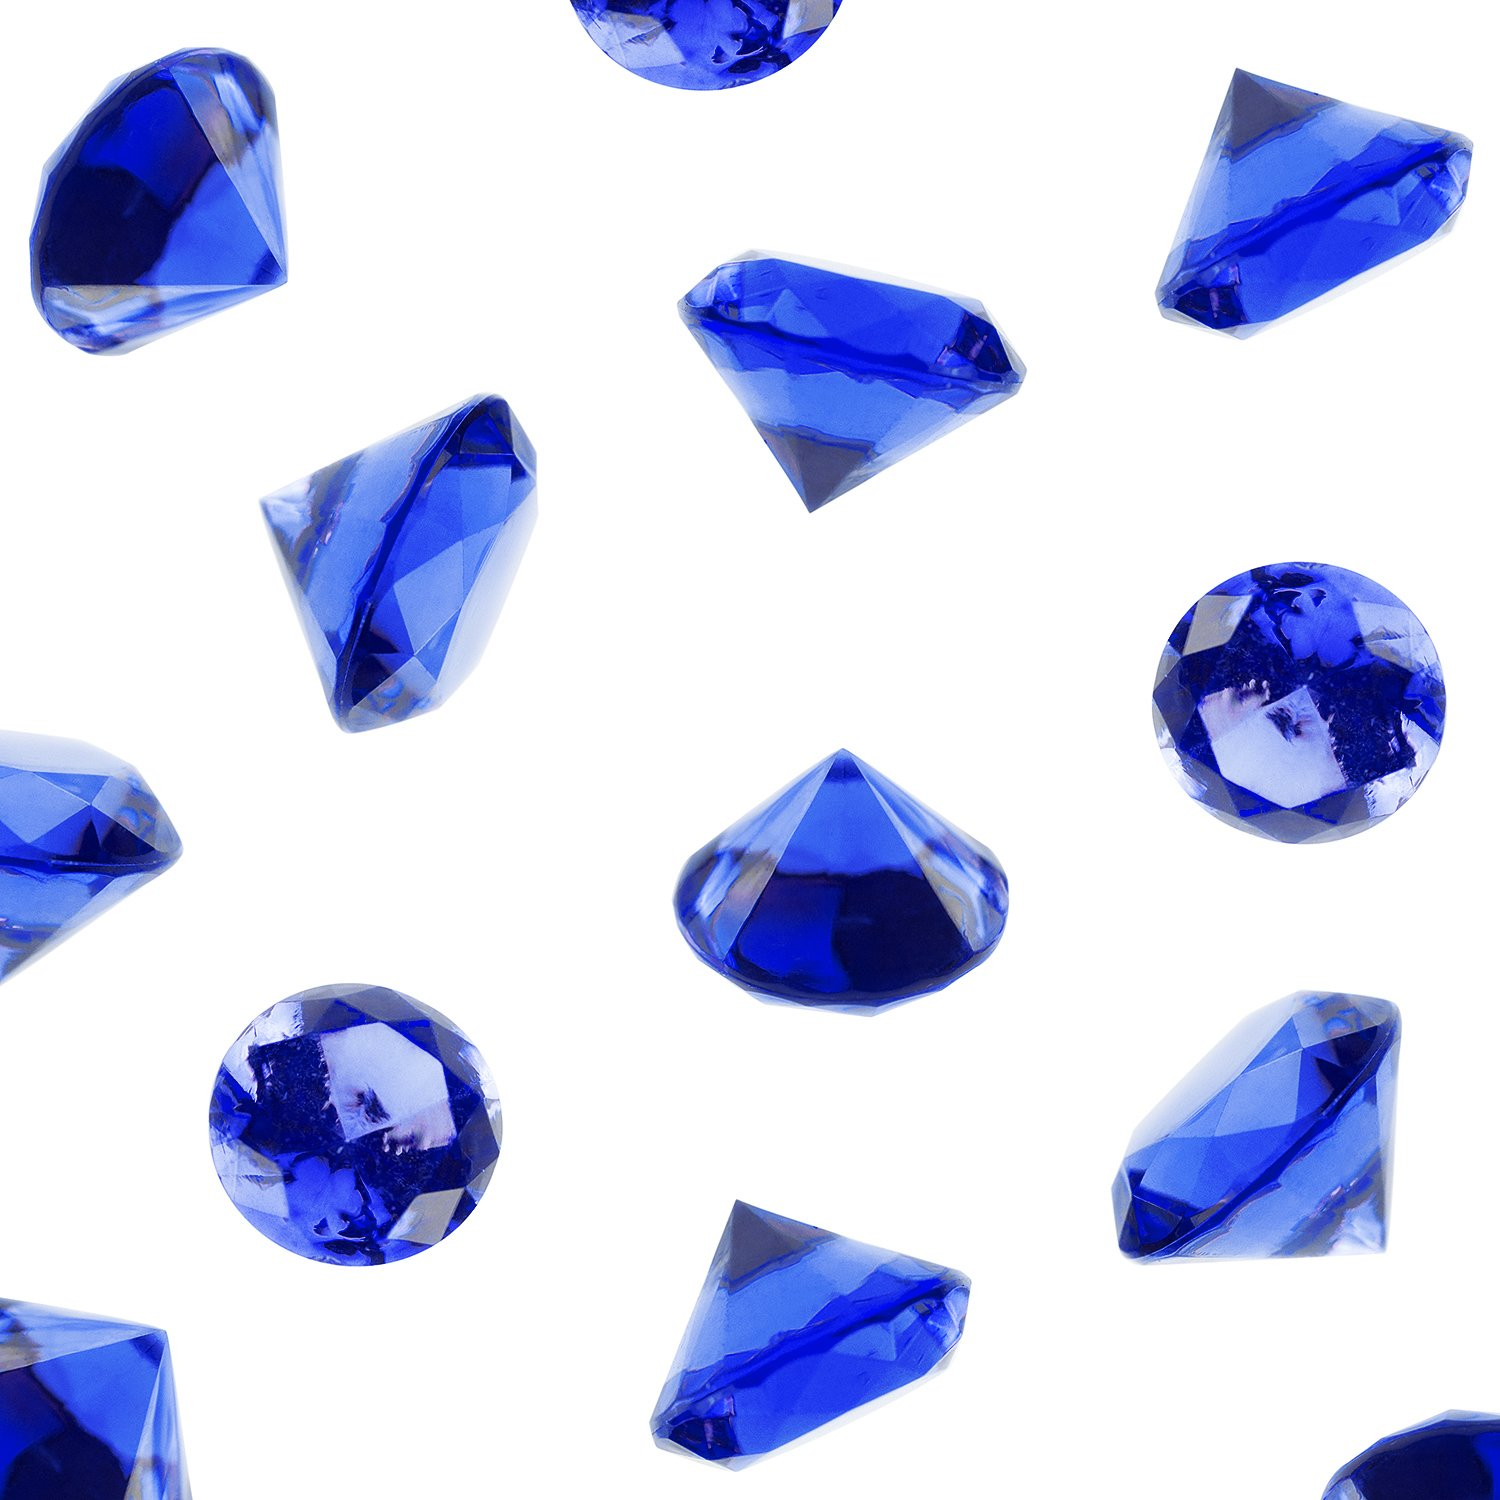 Acrylic Color Faux Round Diamond Crystals Treasure Gems for Table Scatters, Vase Fillers, Event, Wedding, Arts & Crafts (1 Pound, 240 Pieces) by Super Z Outlet (Royal Blue) by Super Z Outlet